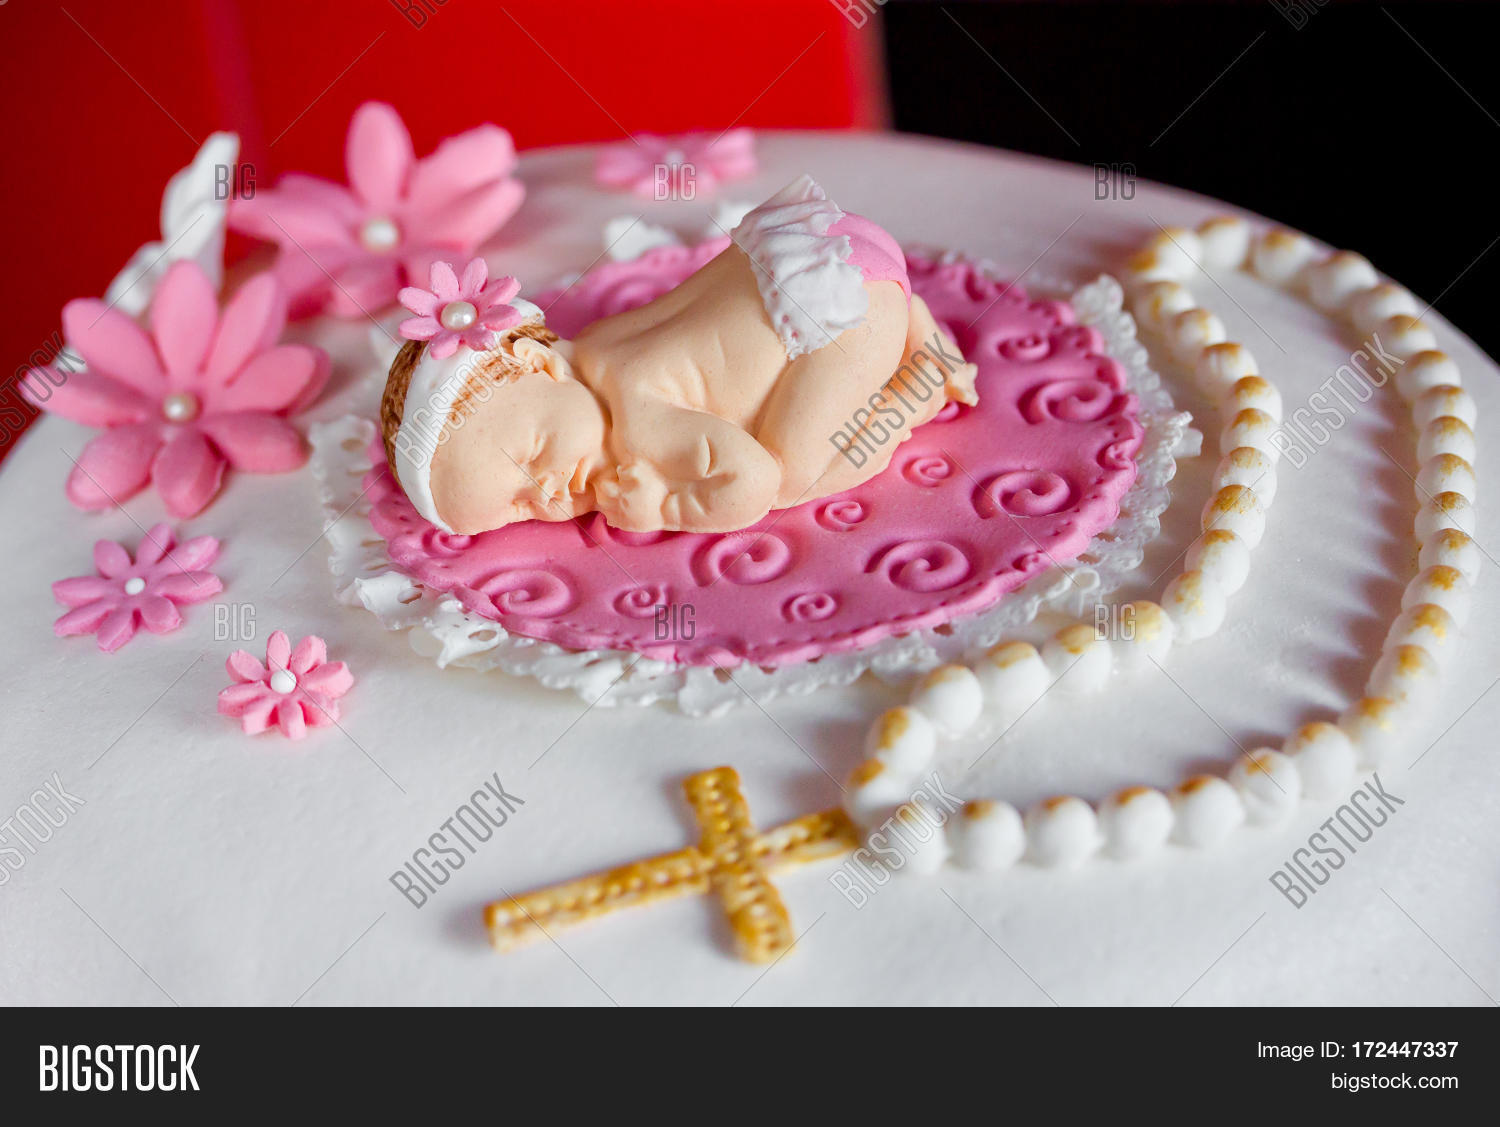 Pleasing Christening Cake Baby Image Photo Free Trial Bigstock Personalised Birthday Cards Veneteletsinfo